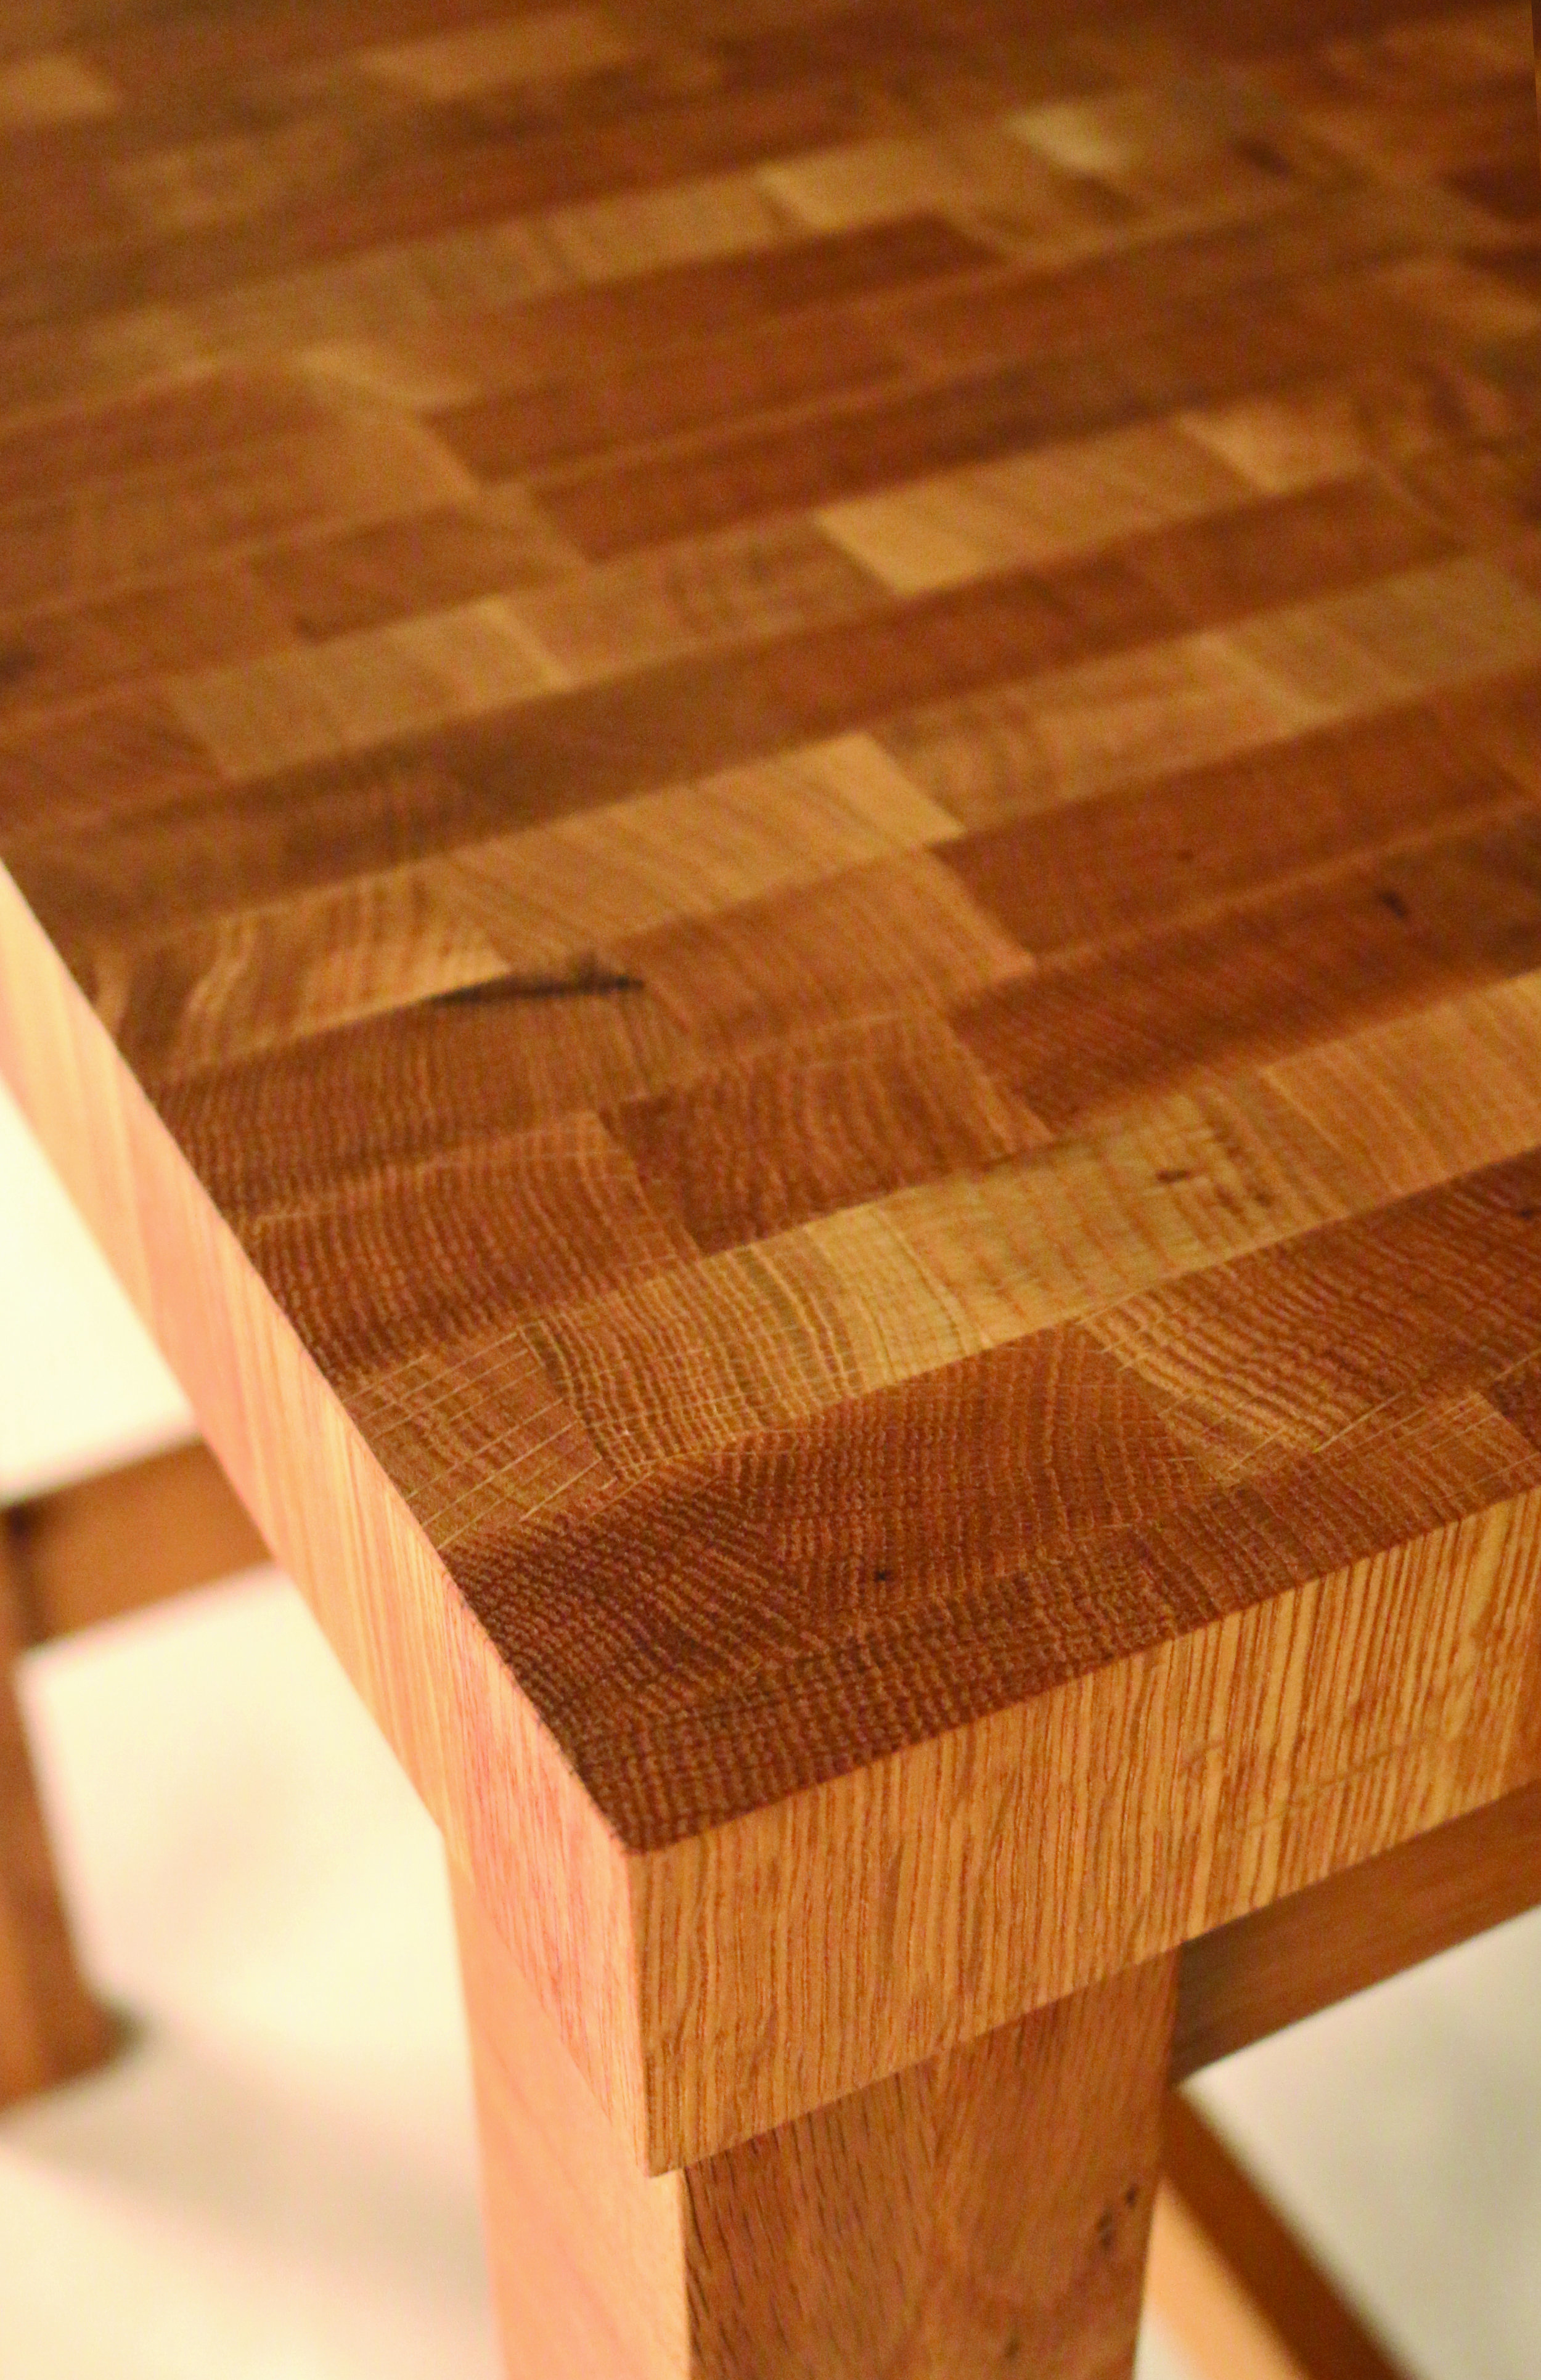 THEJOINERY_BUTCHERBLOCKISLAND_SM_OAK_DETAIL.jpg